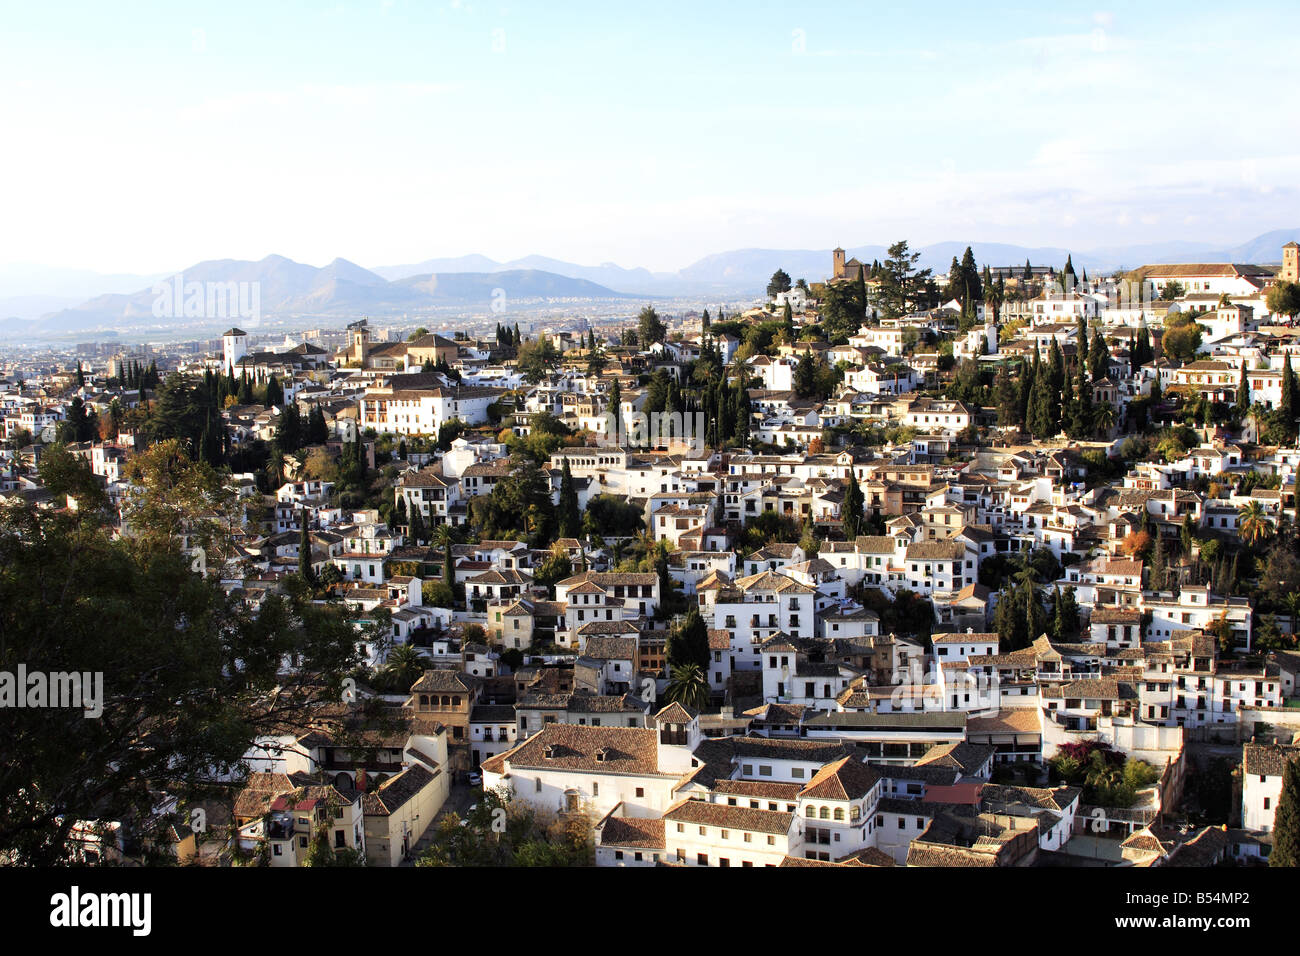 Albaycin district view from the Alhambra in Granada, Spain Stock Photo